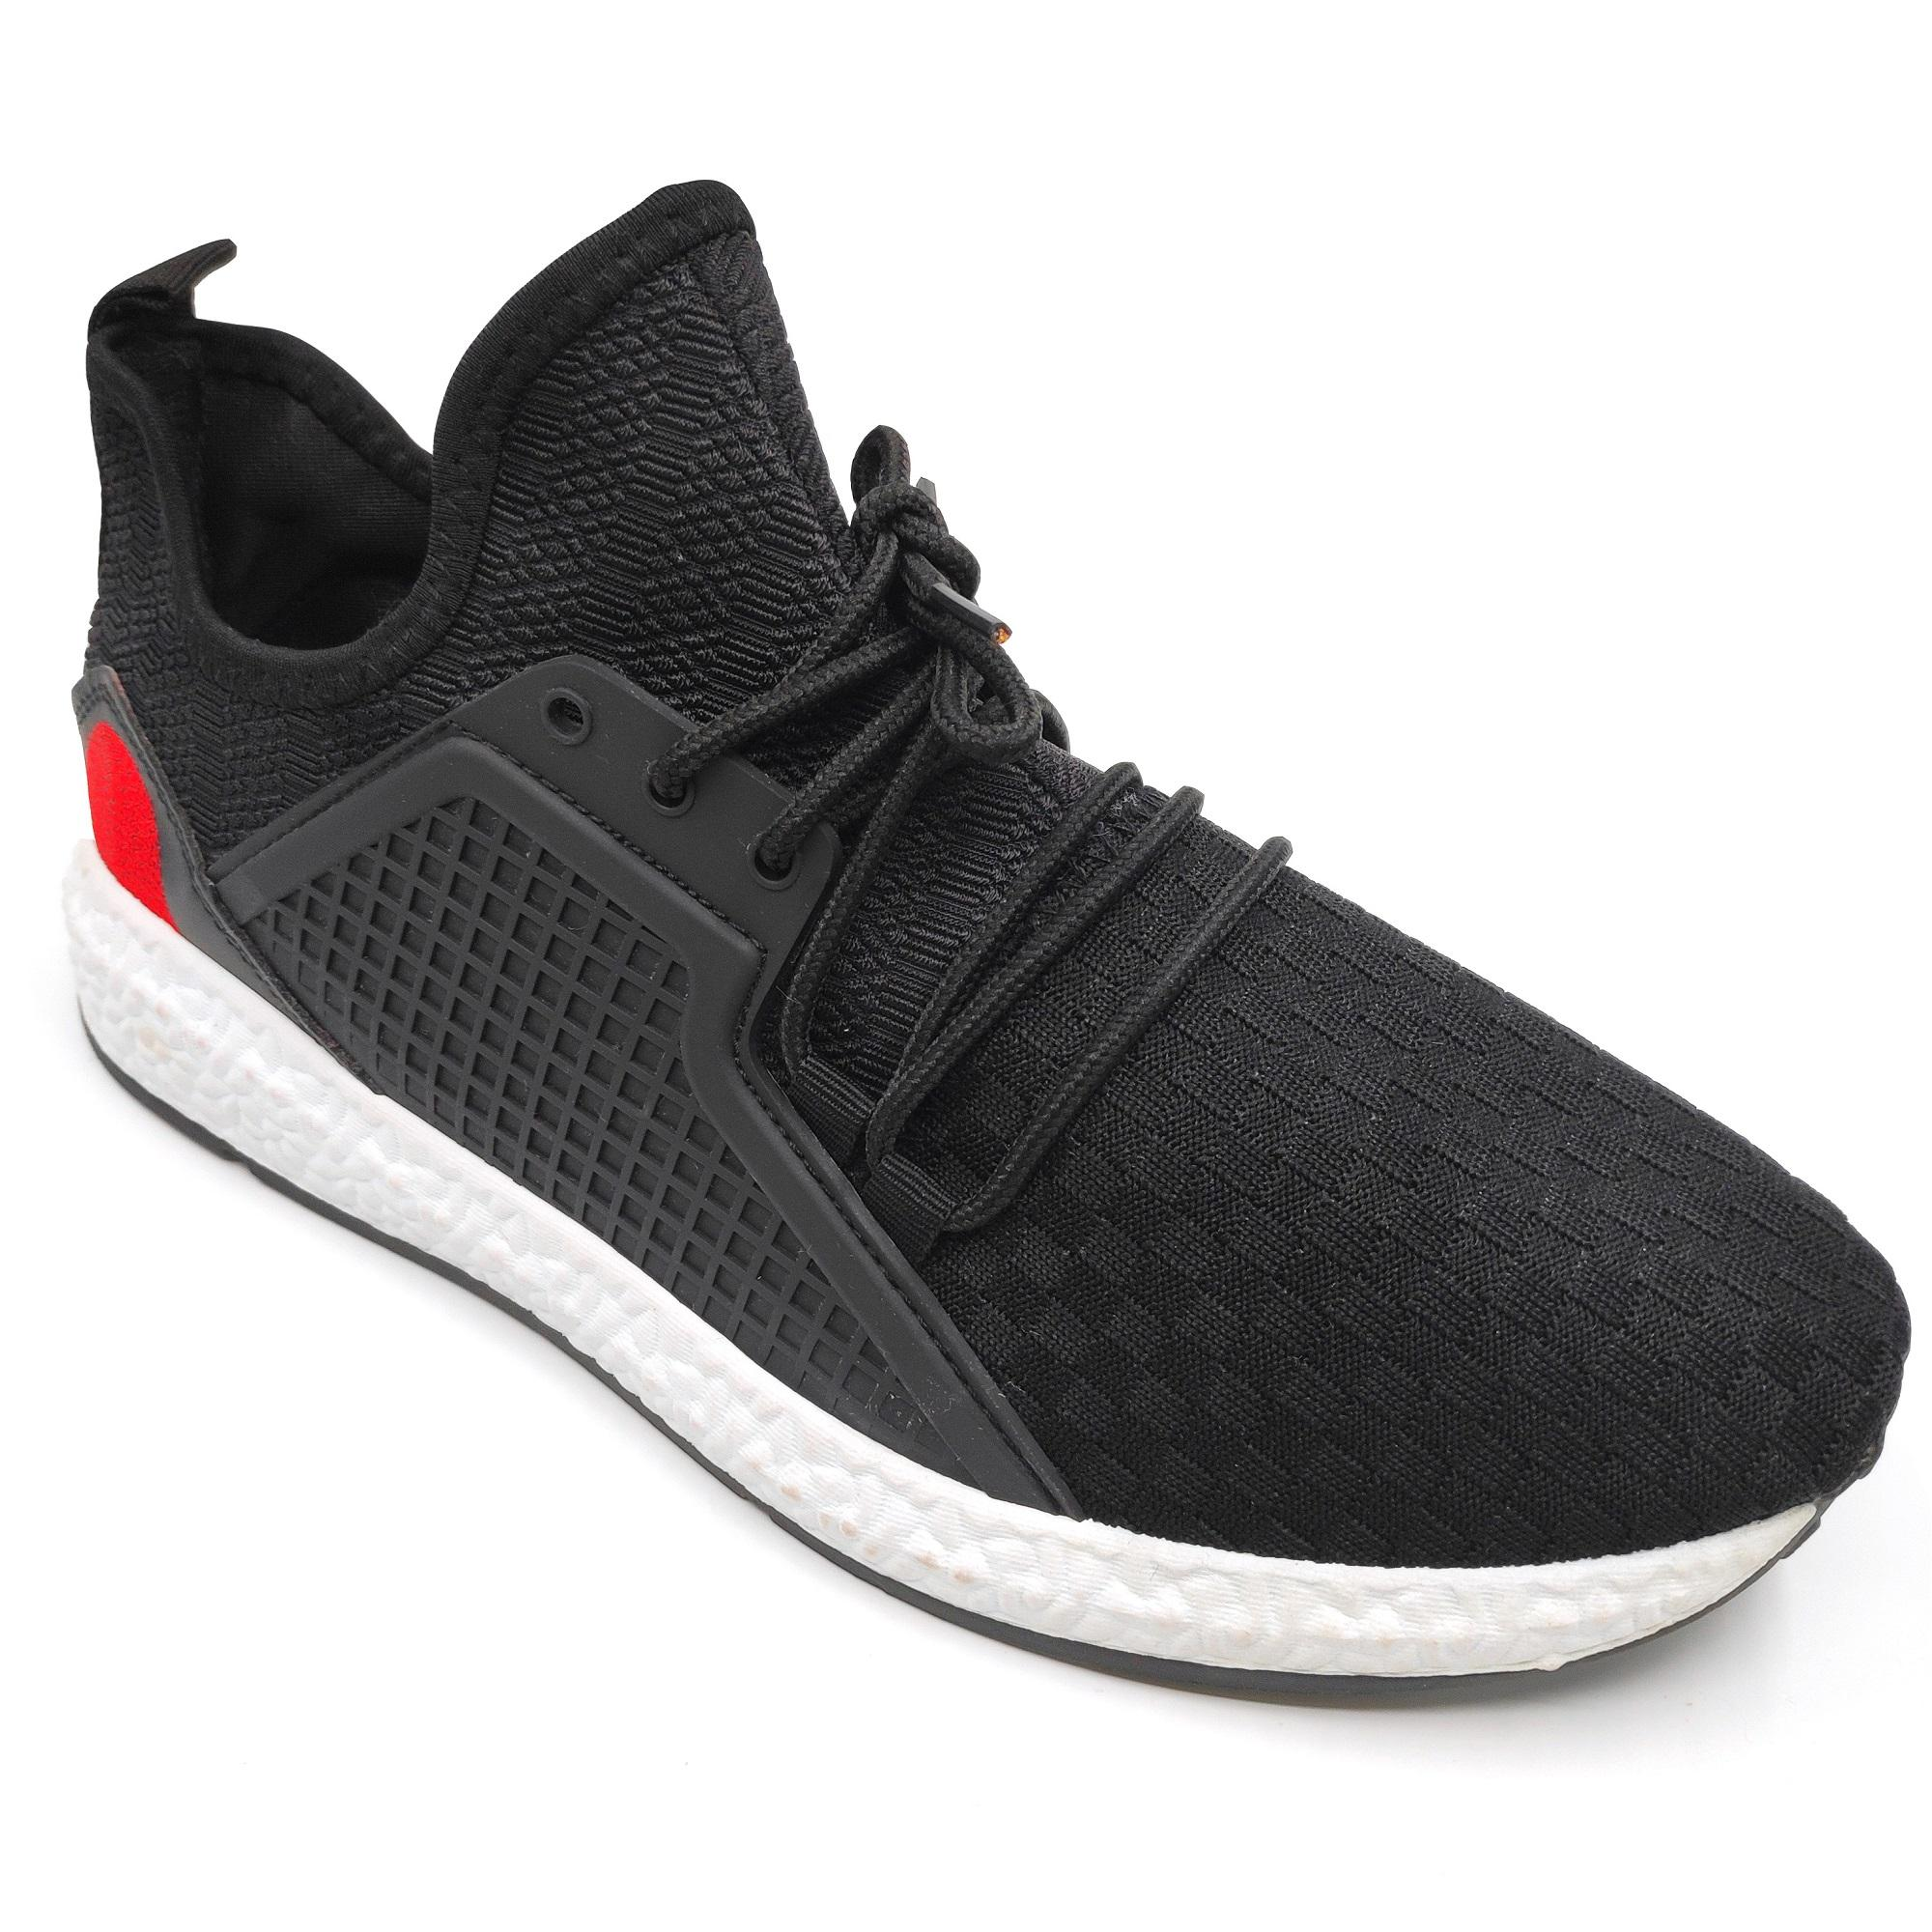 8e696601eff Sneaker Shoes In Bangladesh At Best Price Online - Daraz.com.bd